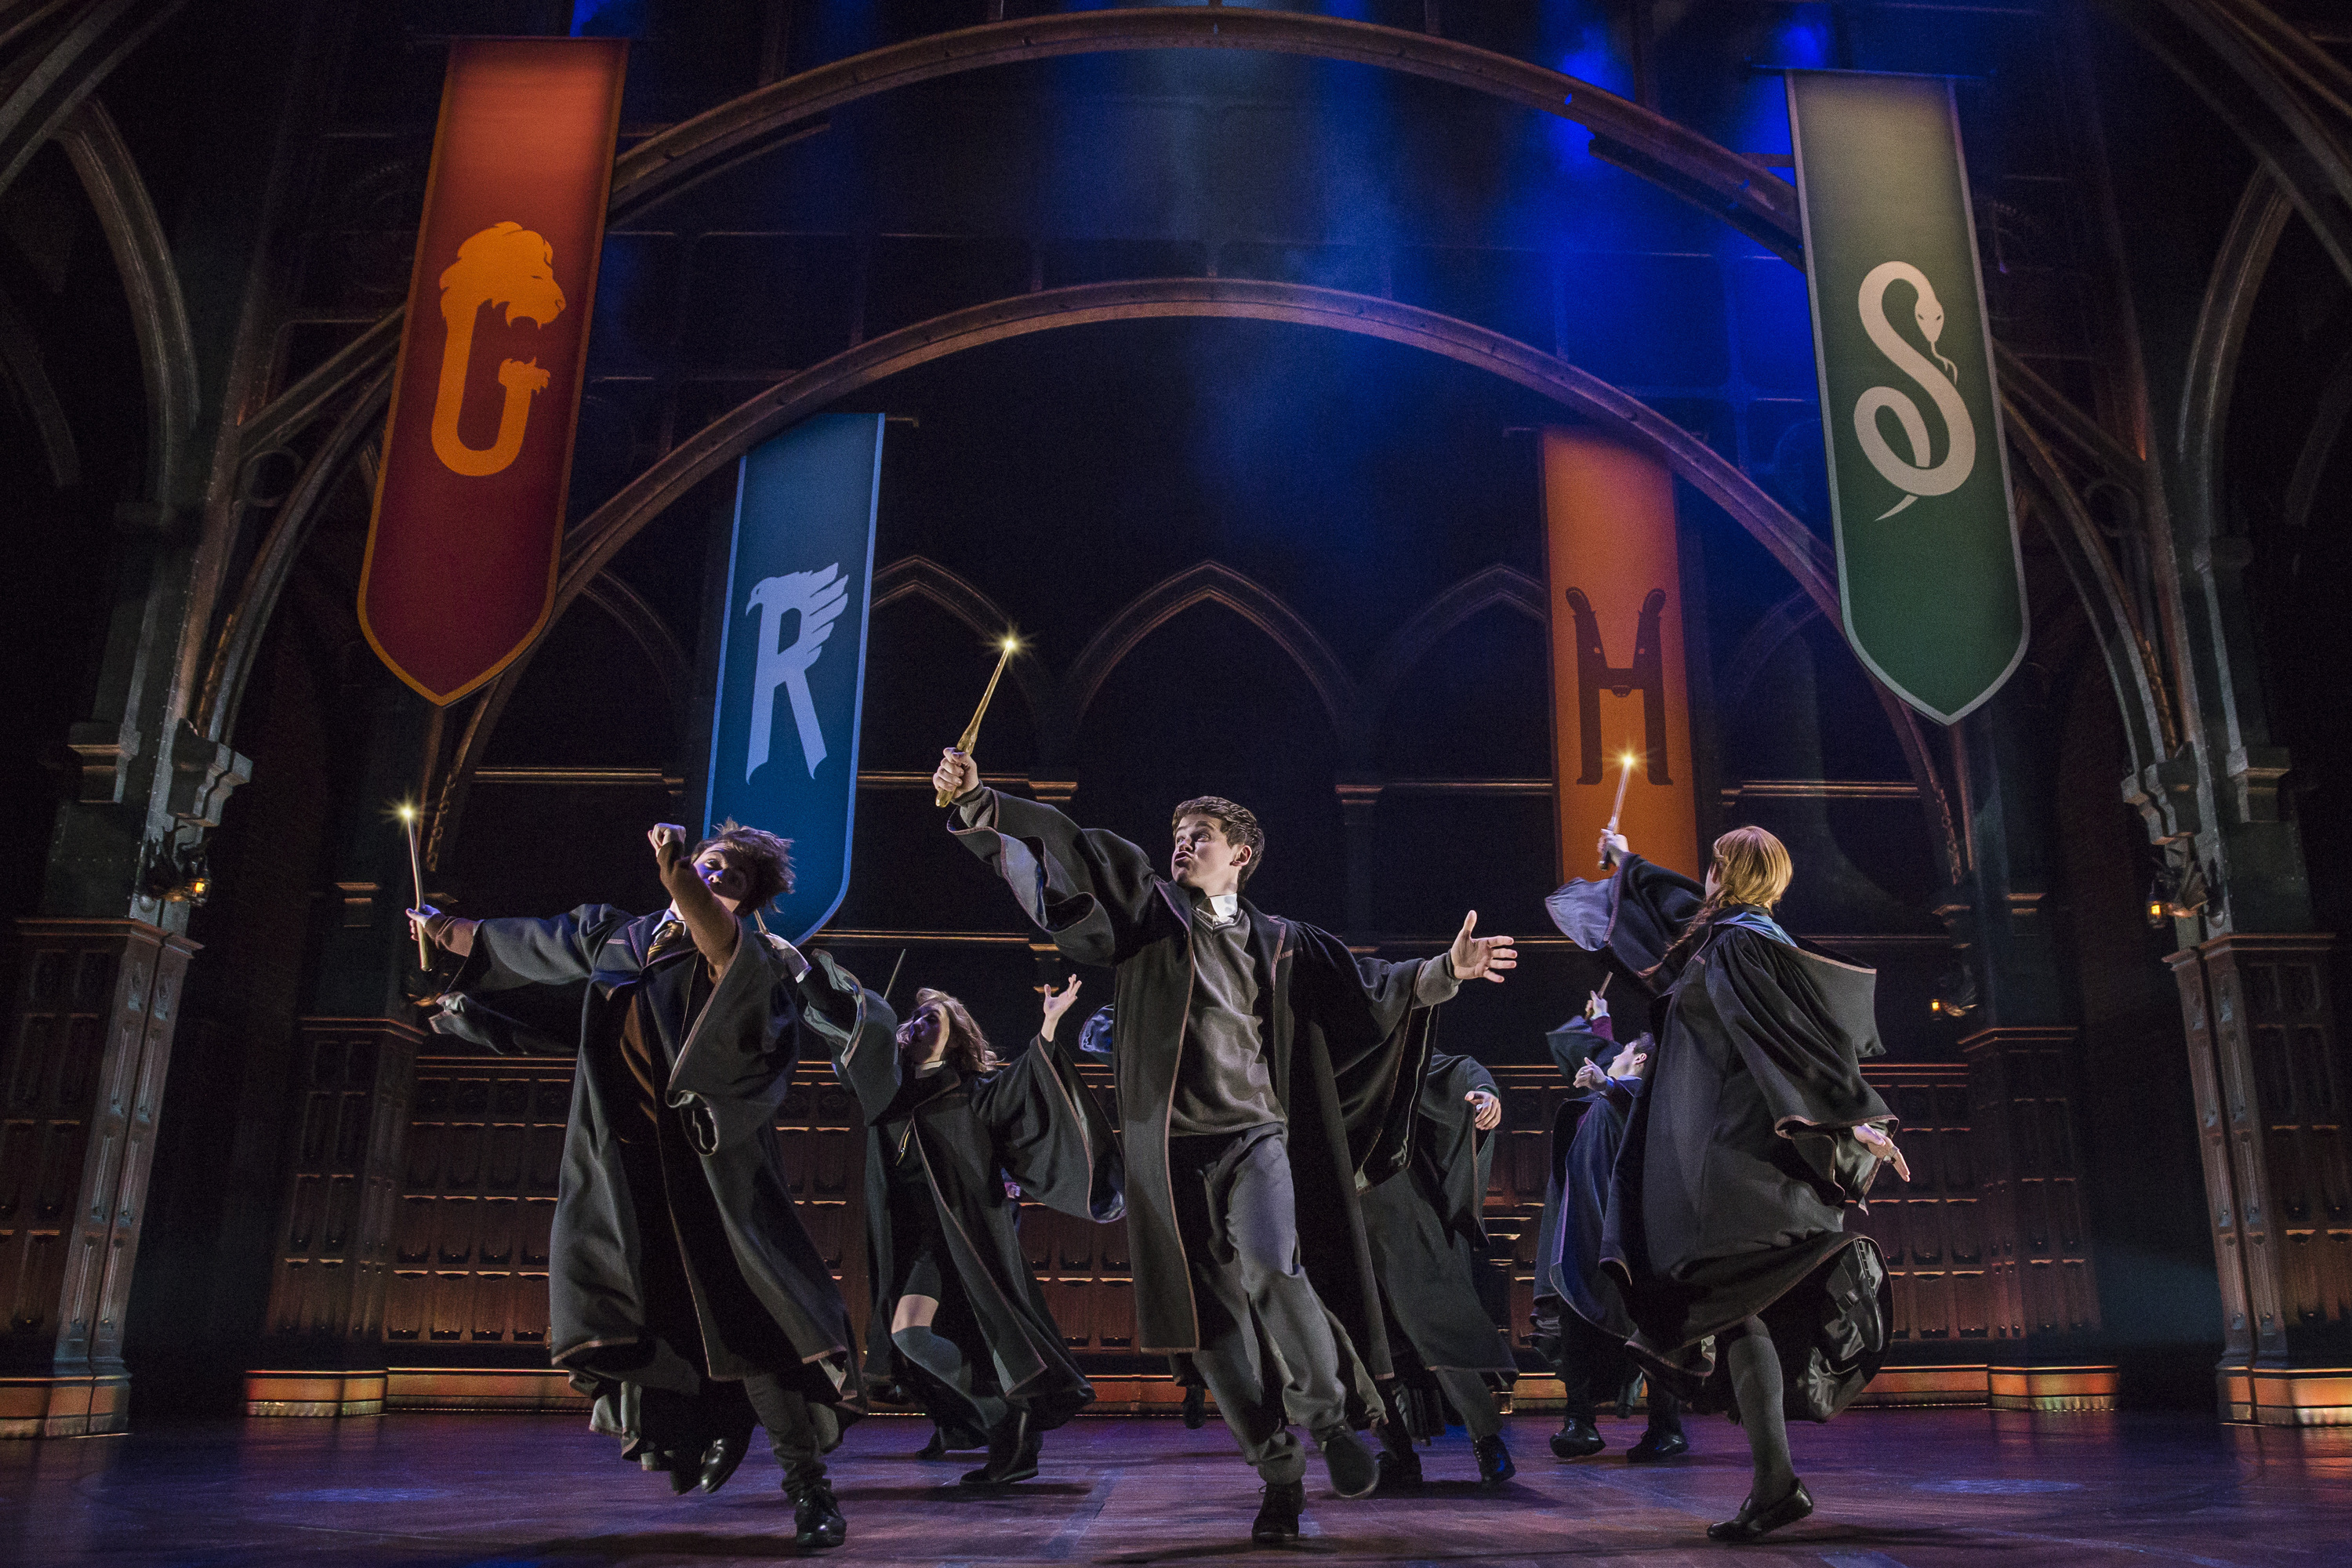 Harry Potter and the Cursed Child New York cast 2019